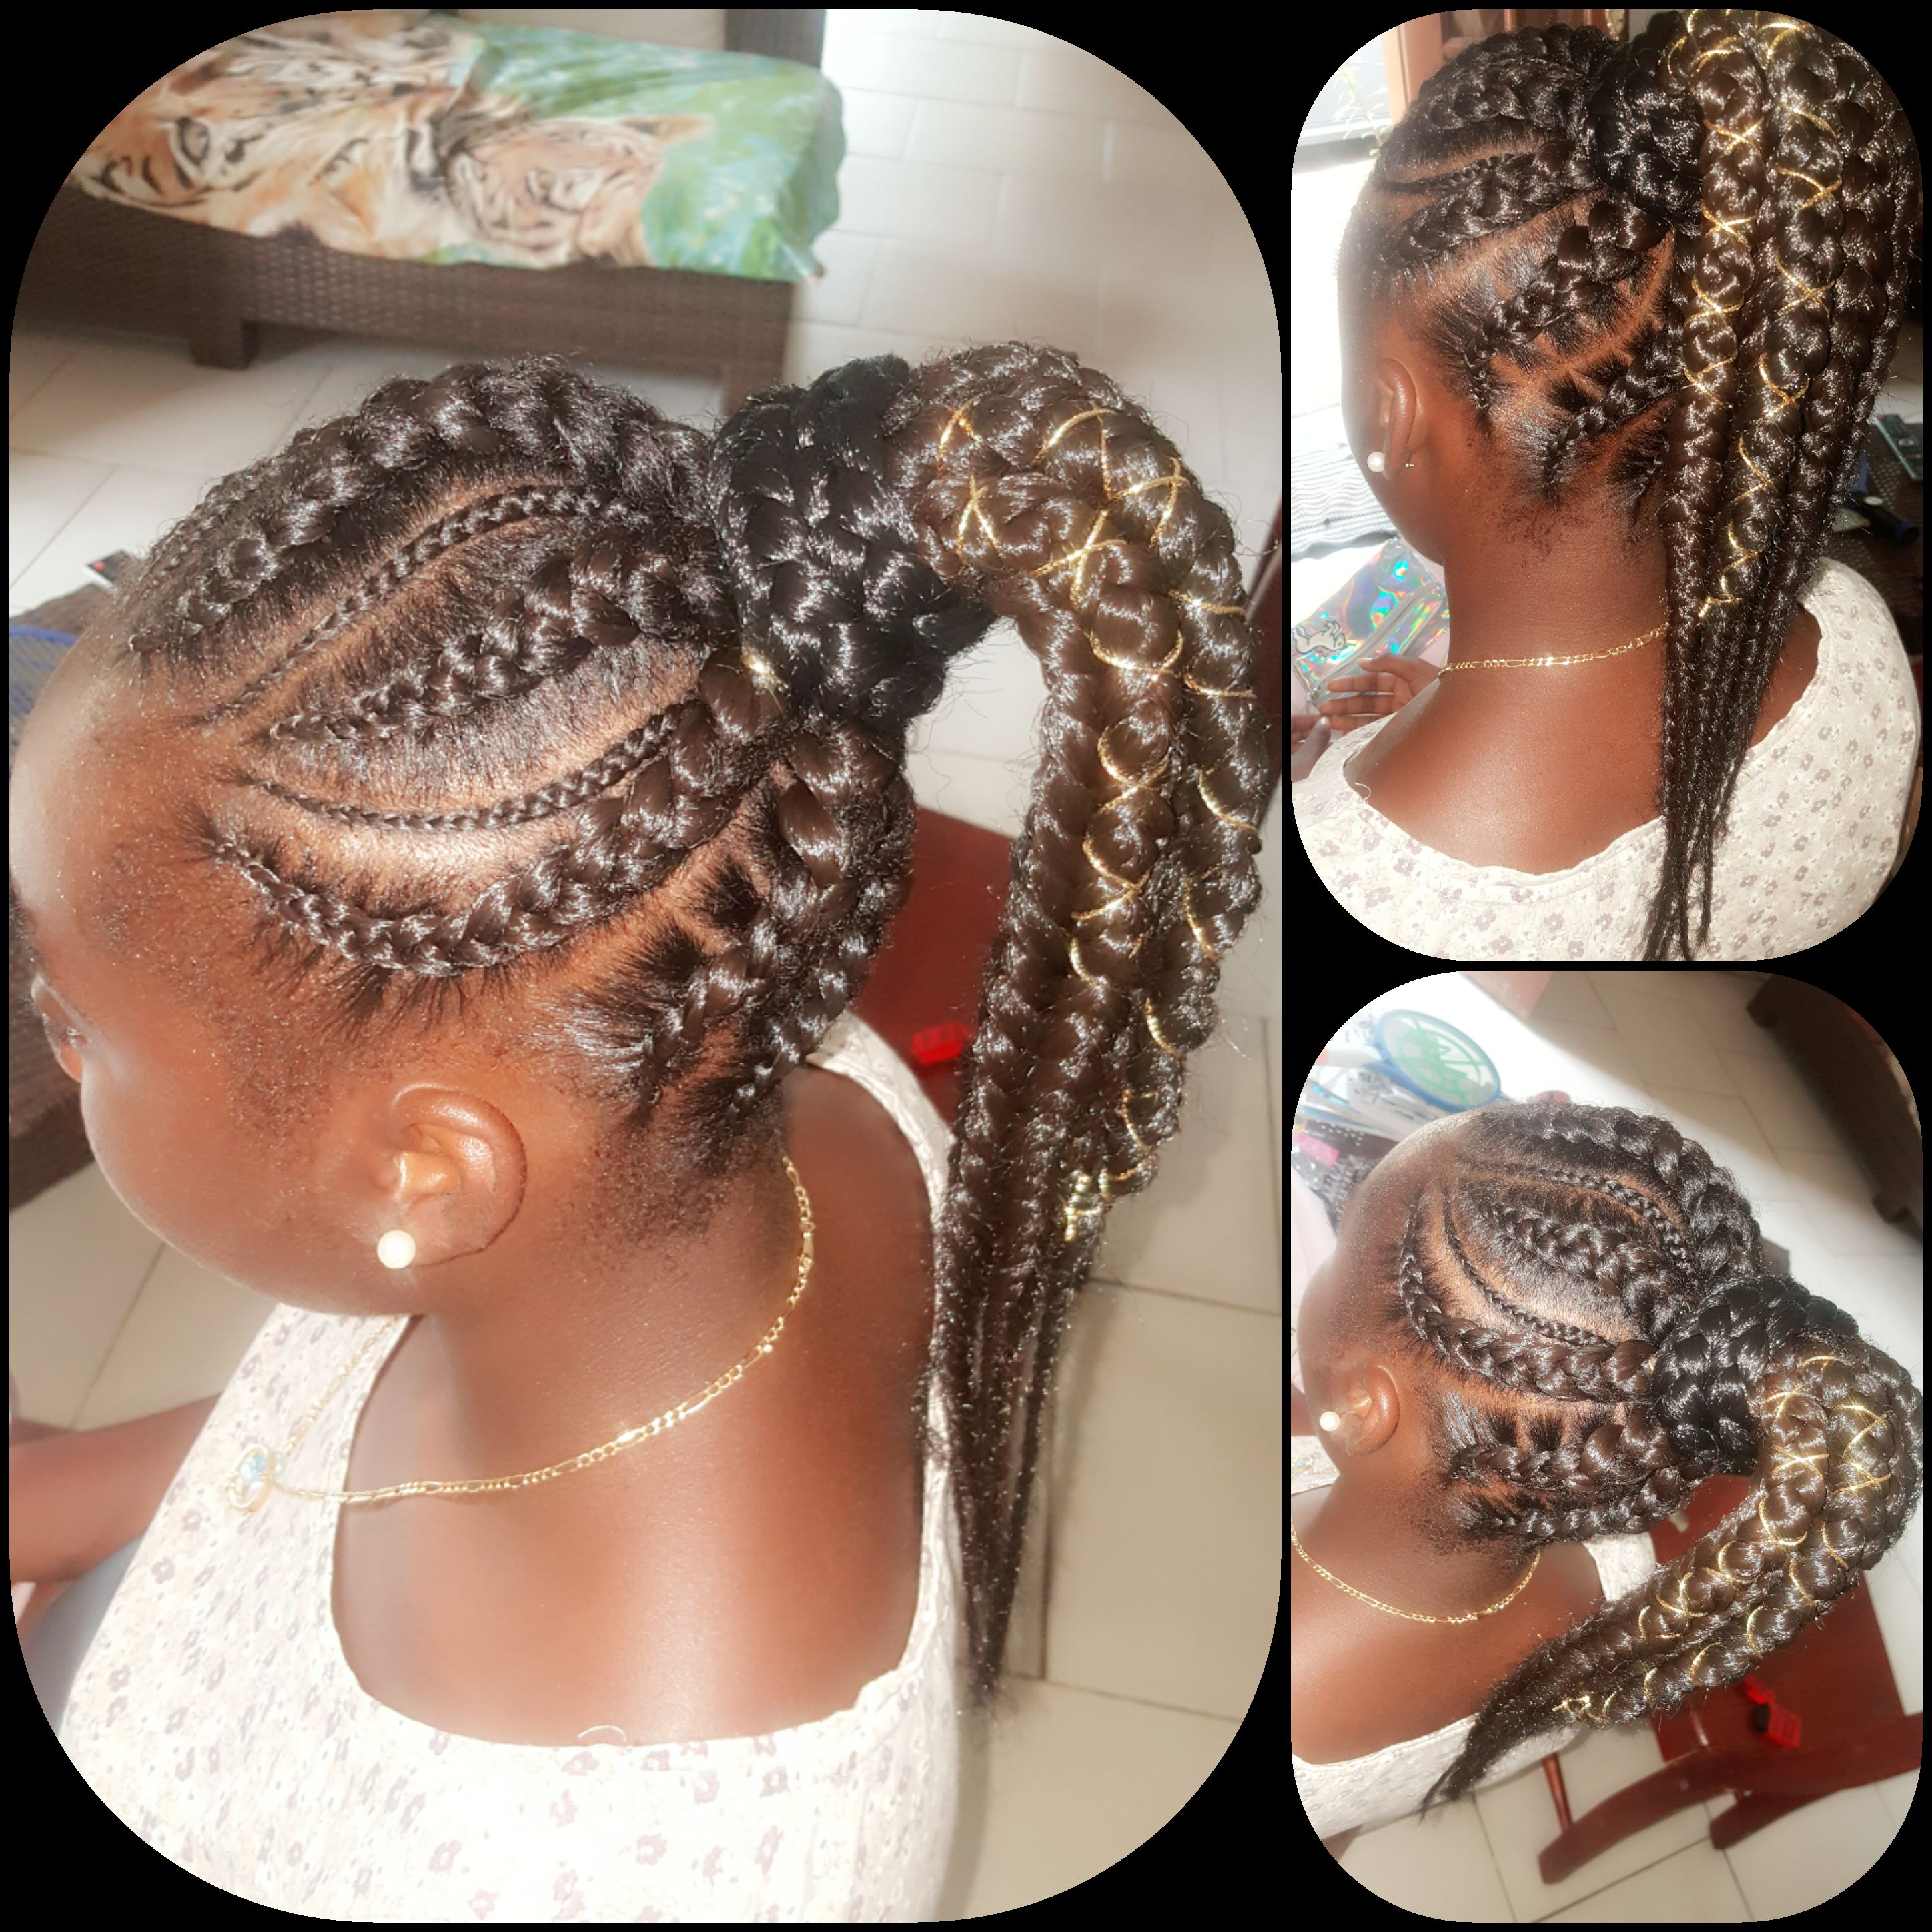 salon de coiffure afro tresse tresses box braids crochet braids vanilles tissages paris 75 77 78 91 92 93 94 95 NUUNGCFK